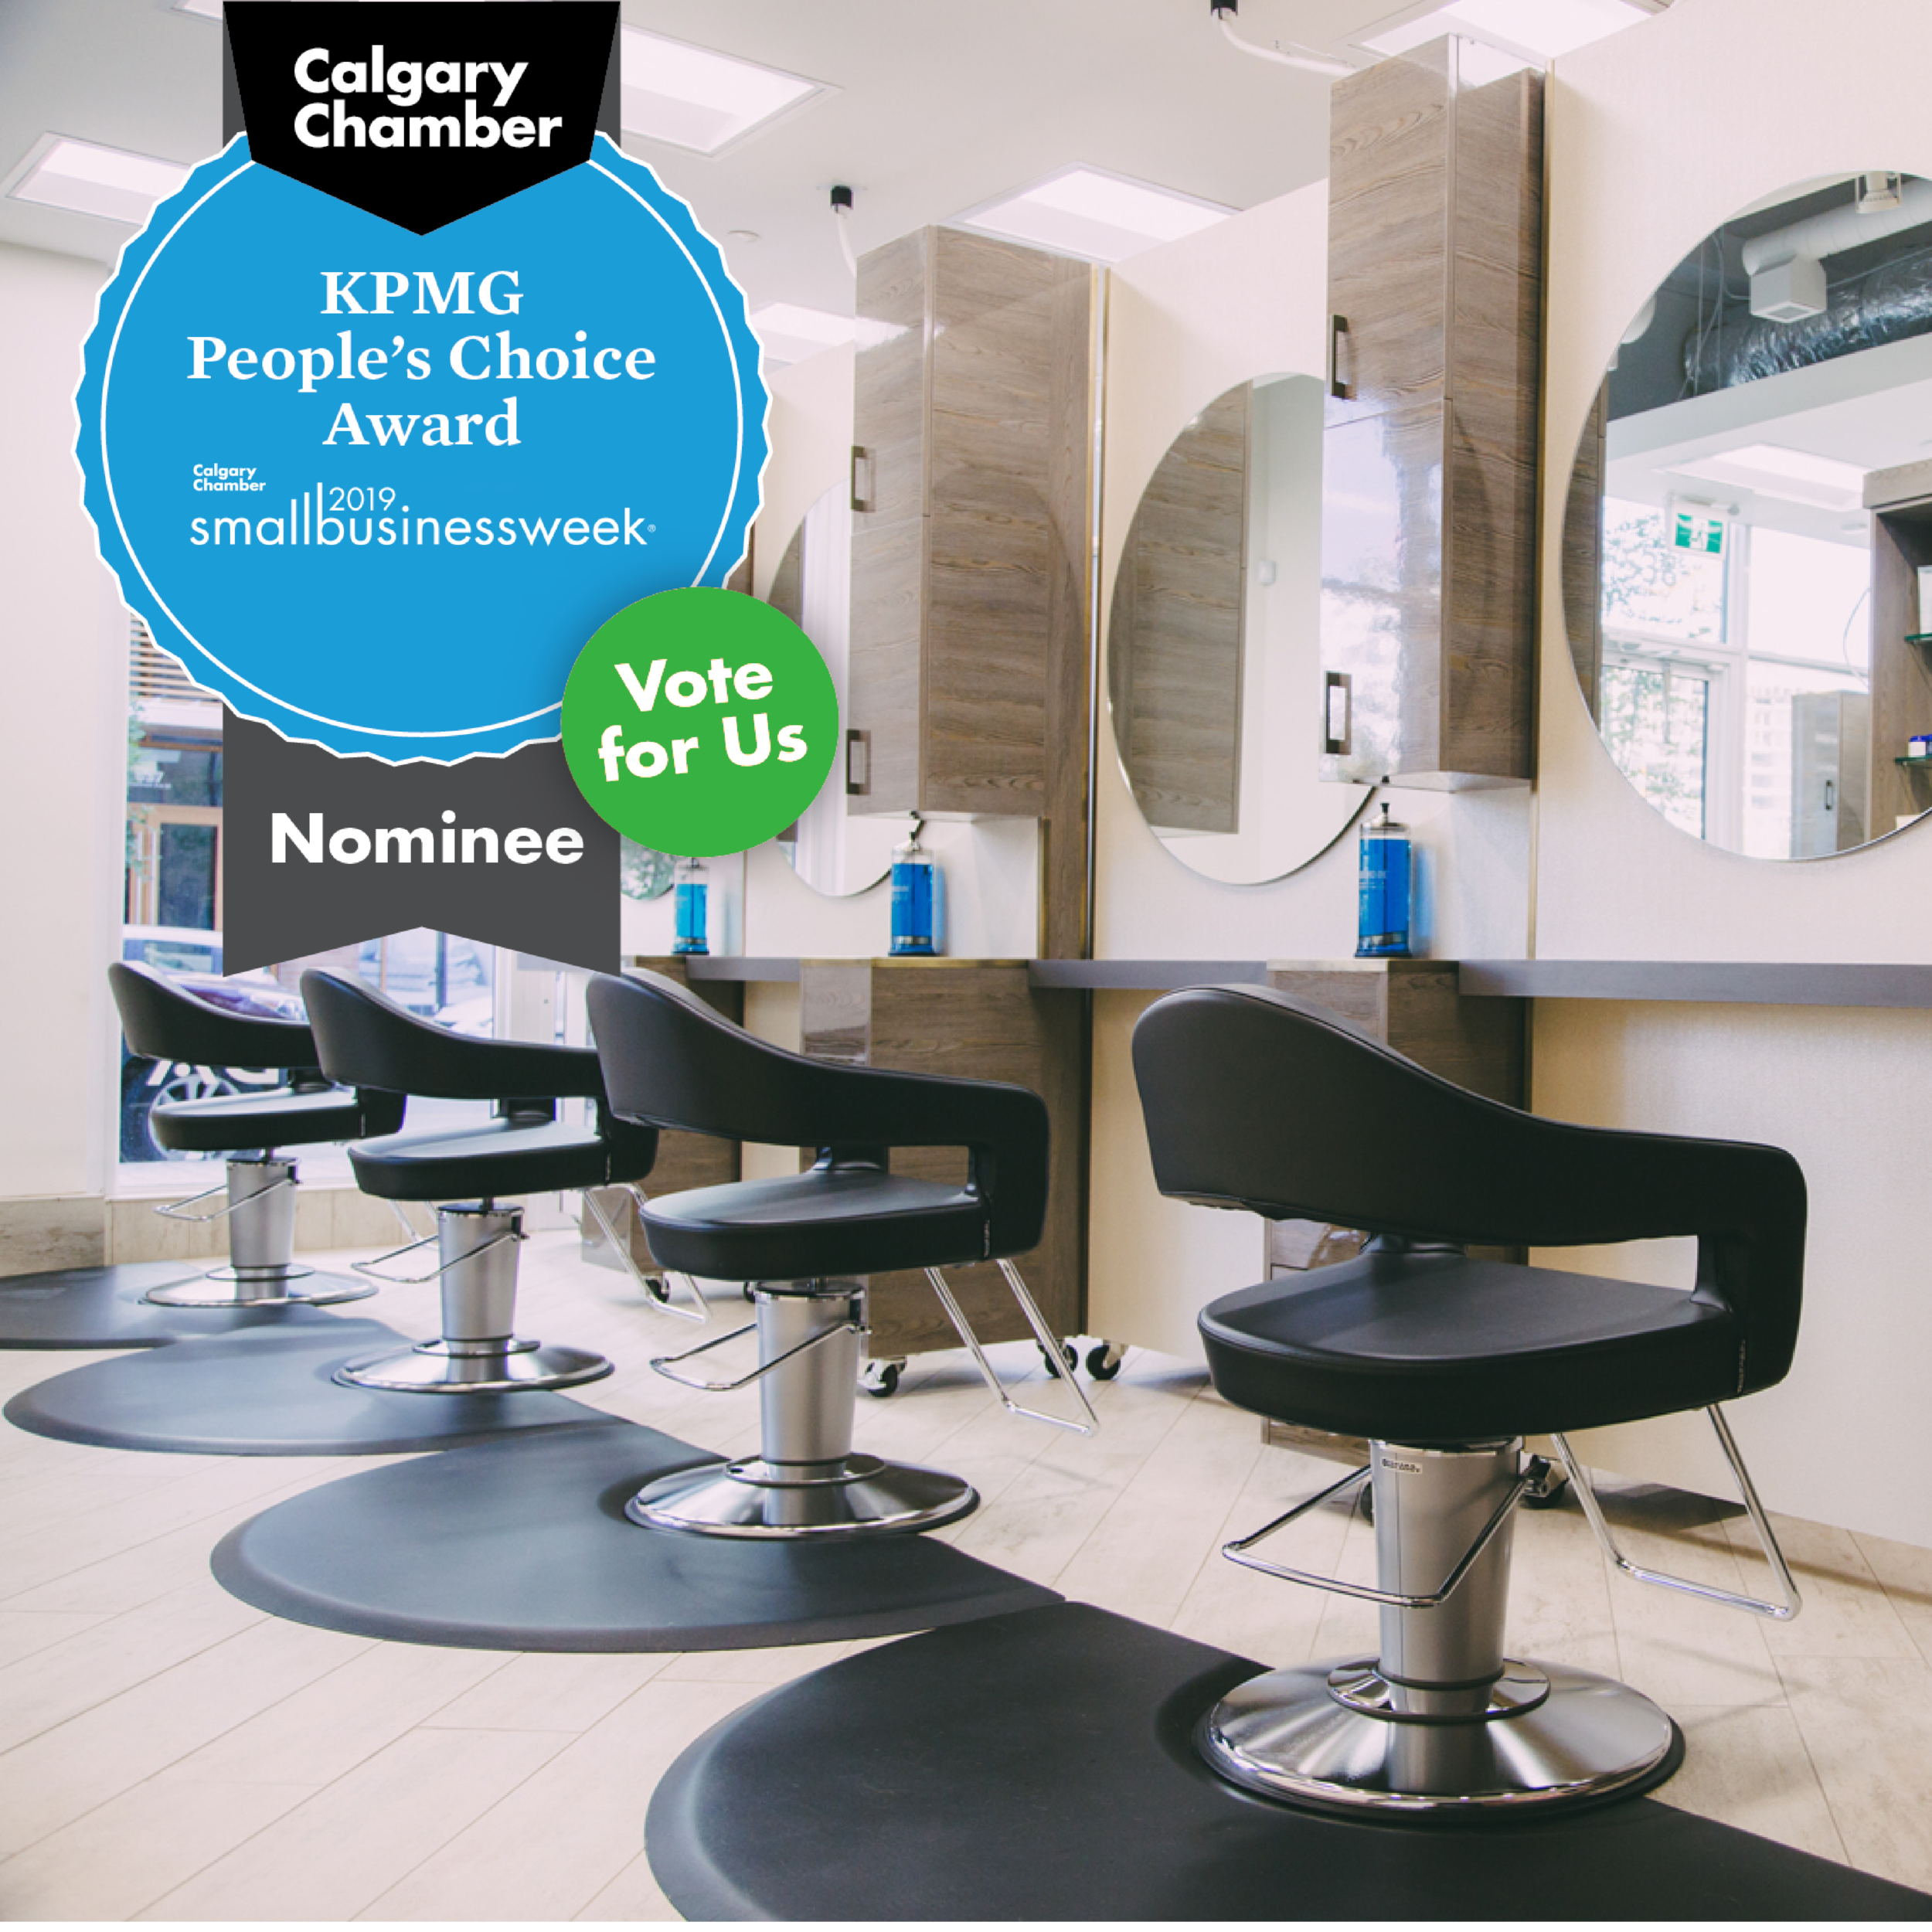 KPMG People's Choice Award RedBloom Salon